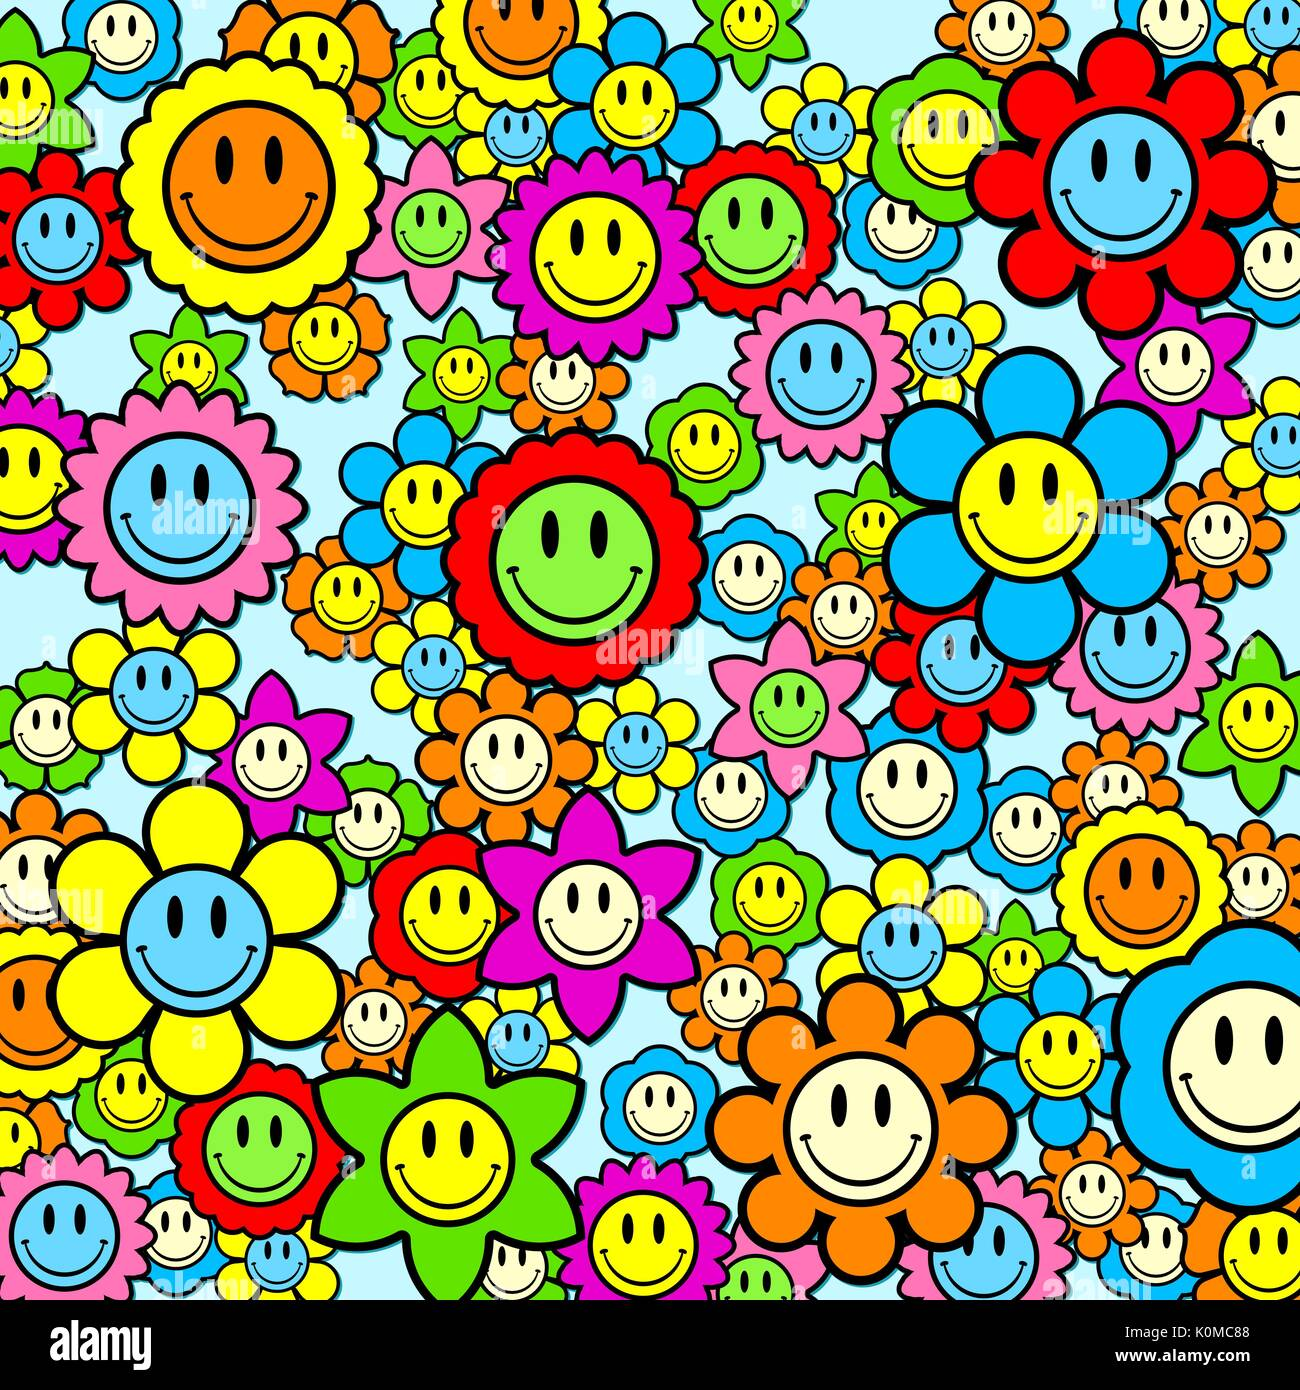 Colorful smiley face flower background illustration stock vector colorful smiley face flower background illustration voltagebd Gallery